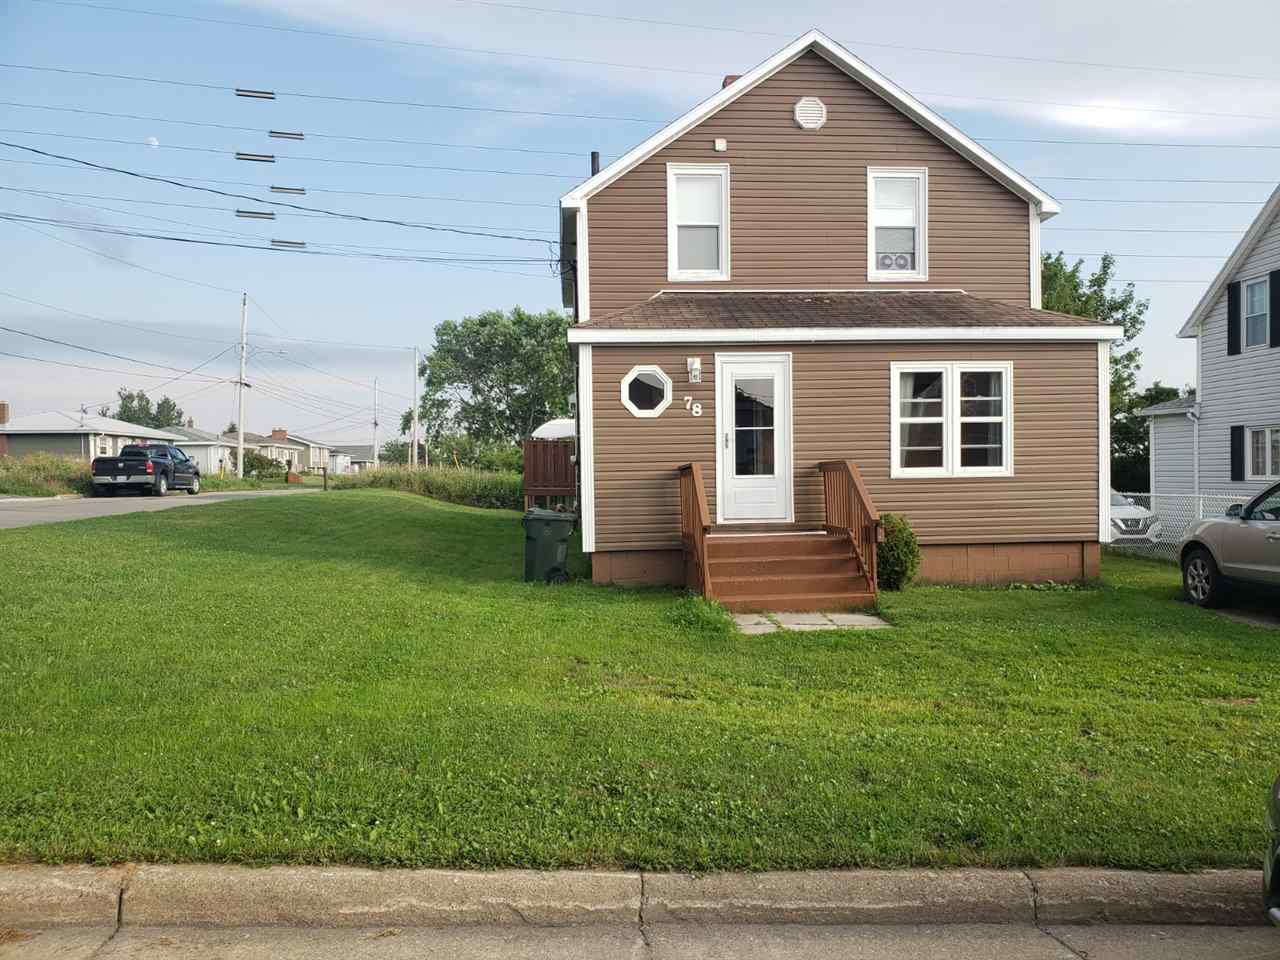 Main Photo: 78 Catherine Street in Sydney: 201-Sydney Residential for sale (Cape Breton)  : MLS®# 202014429